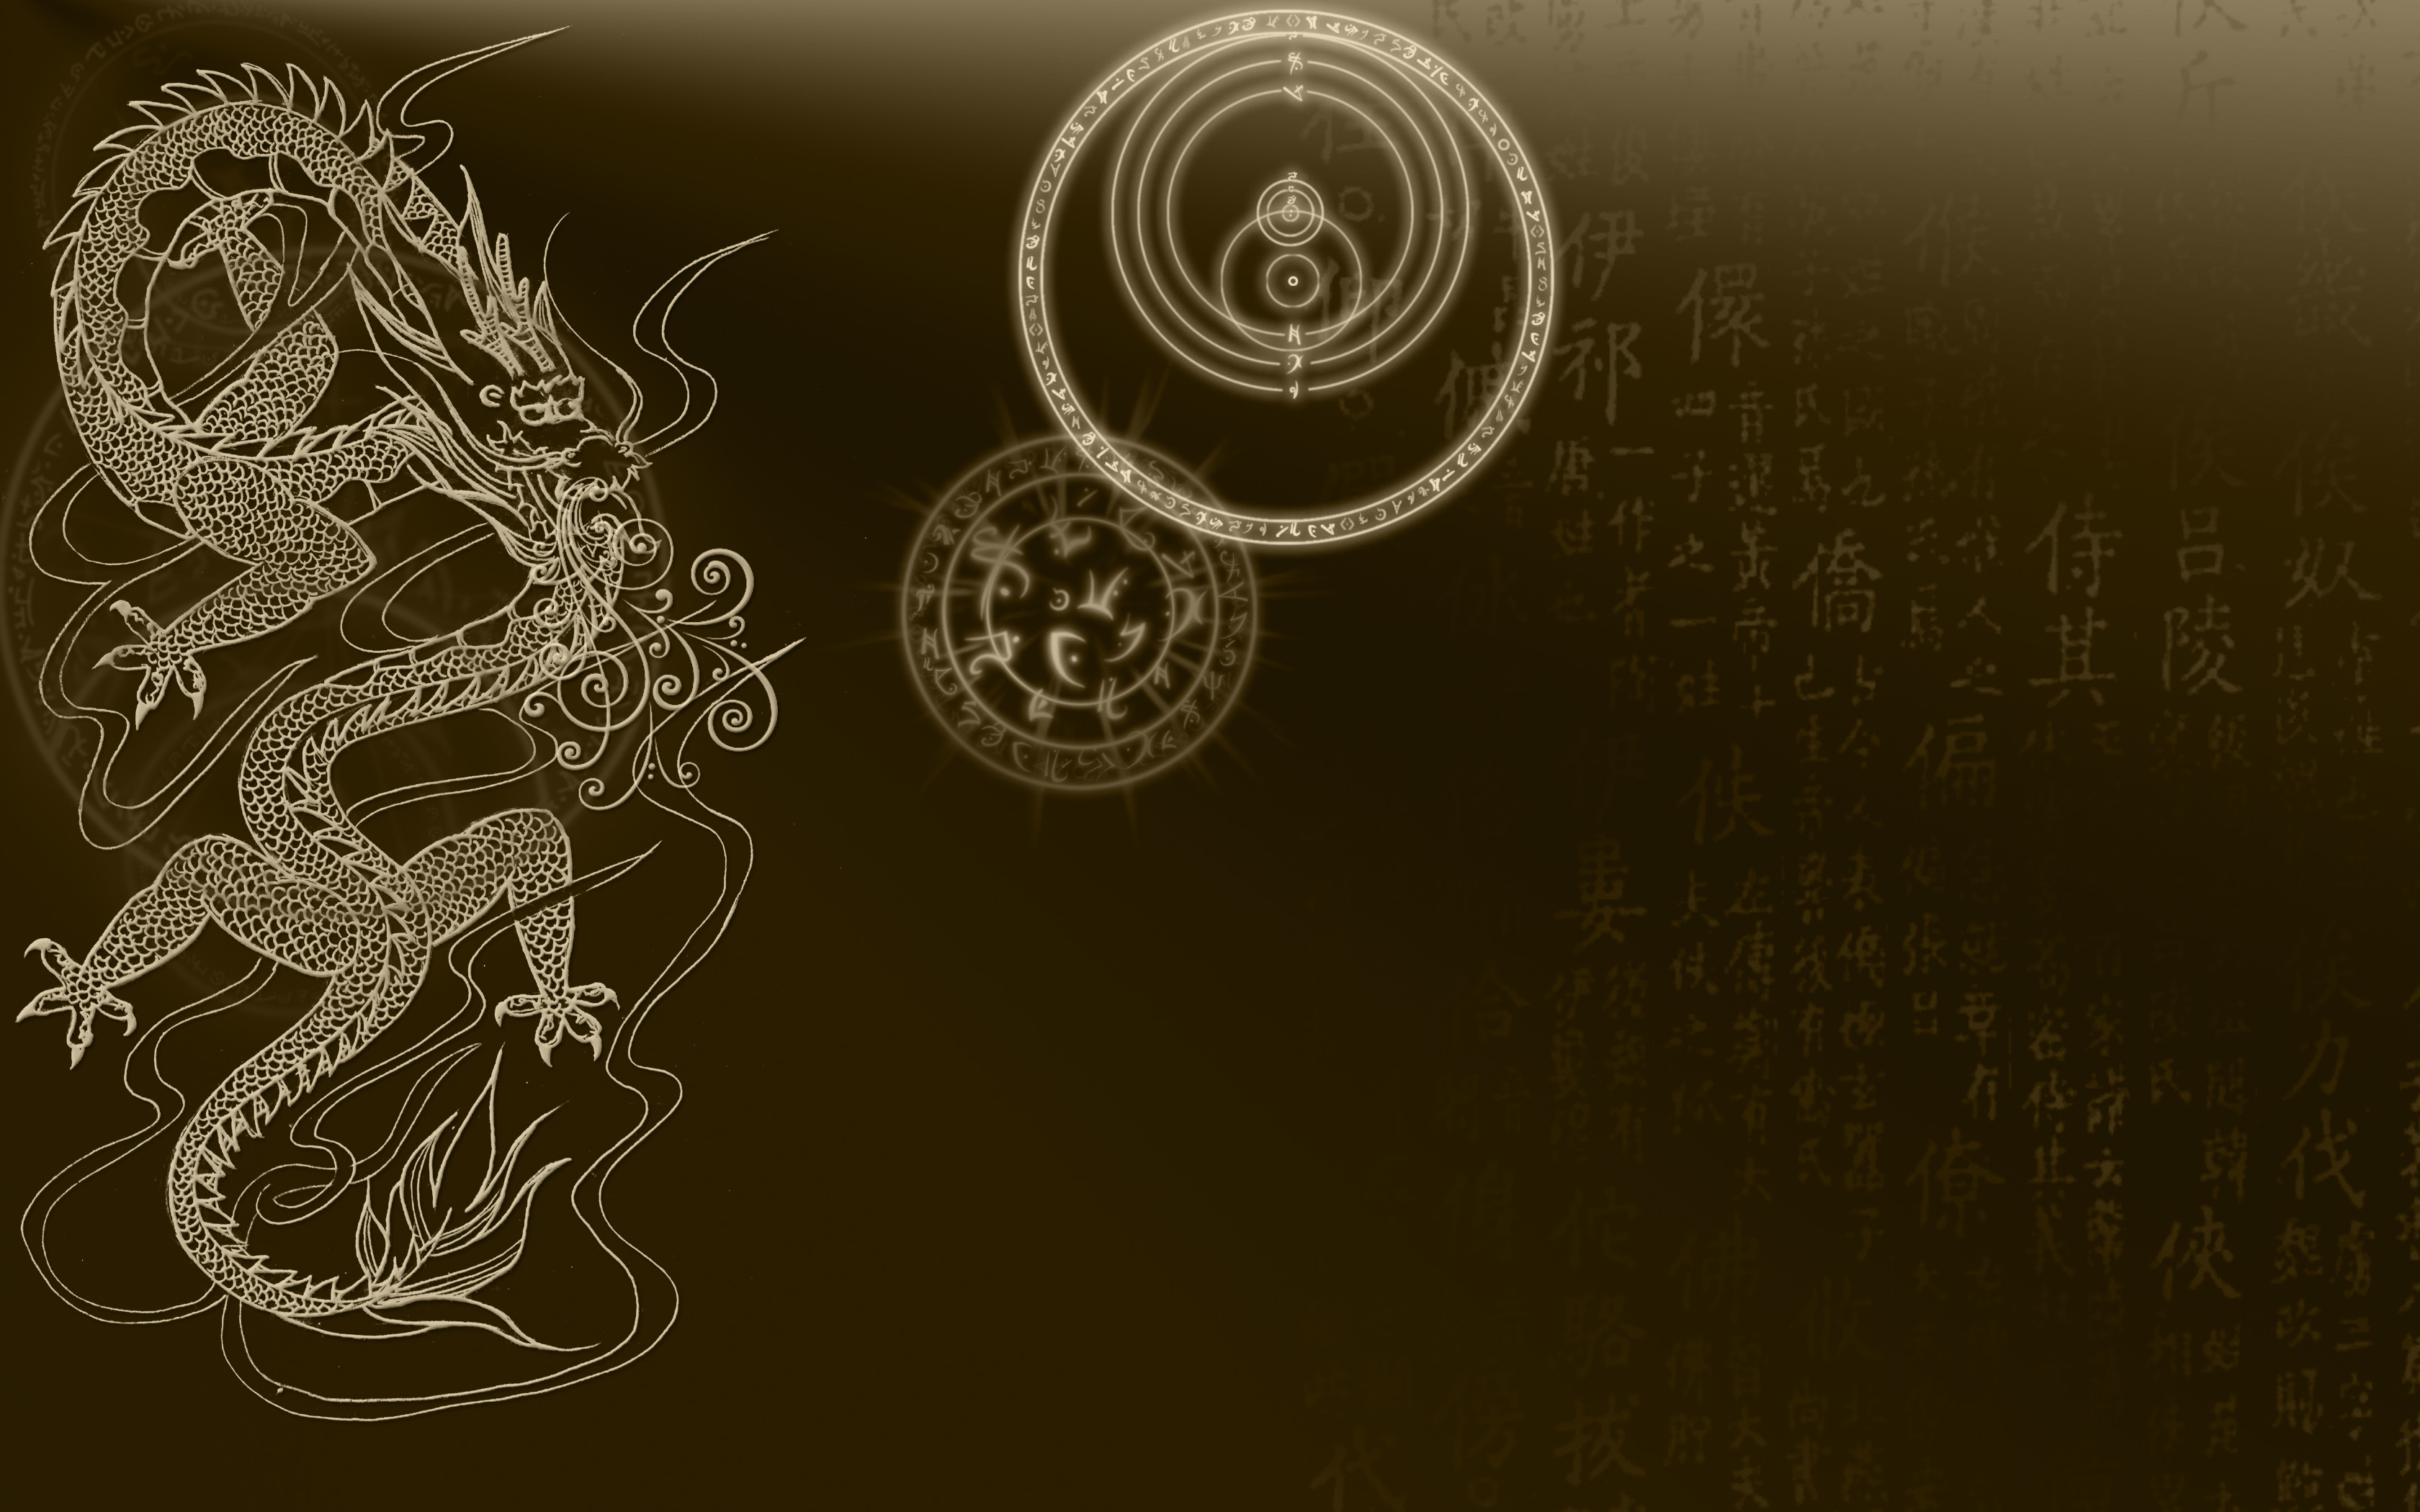 3360x2100 23 Chinese Dragon HD Wallpapers | Backgrounds - Wallpaper Abyss